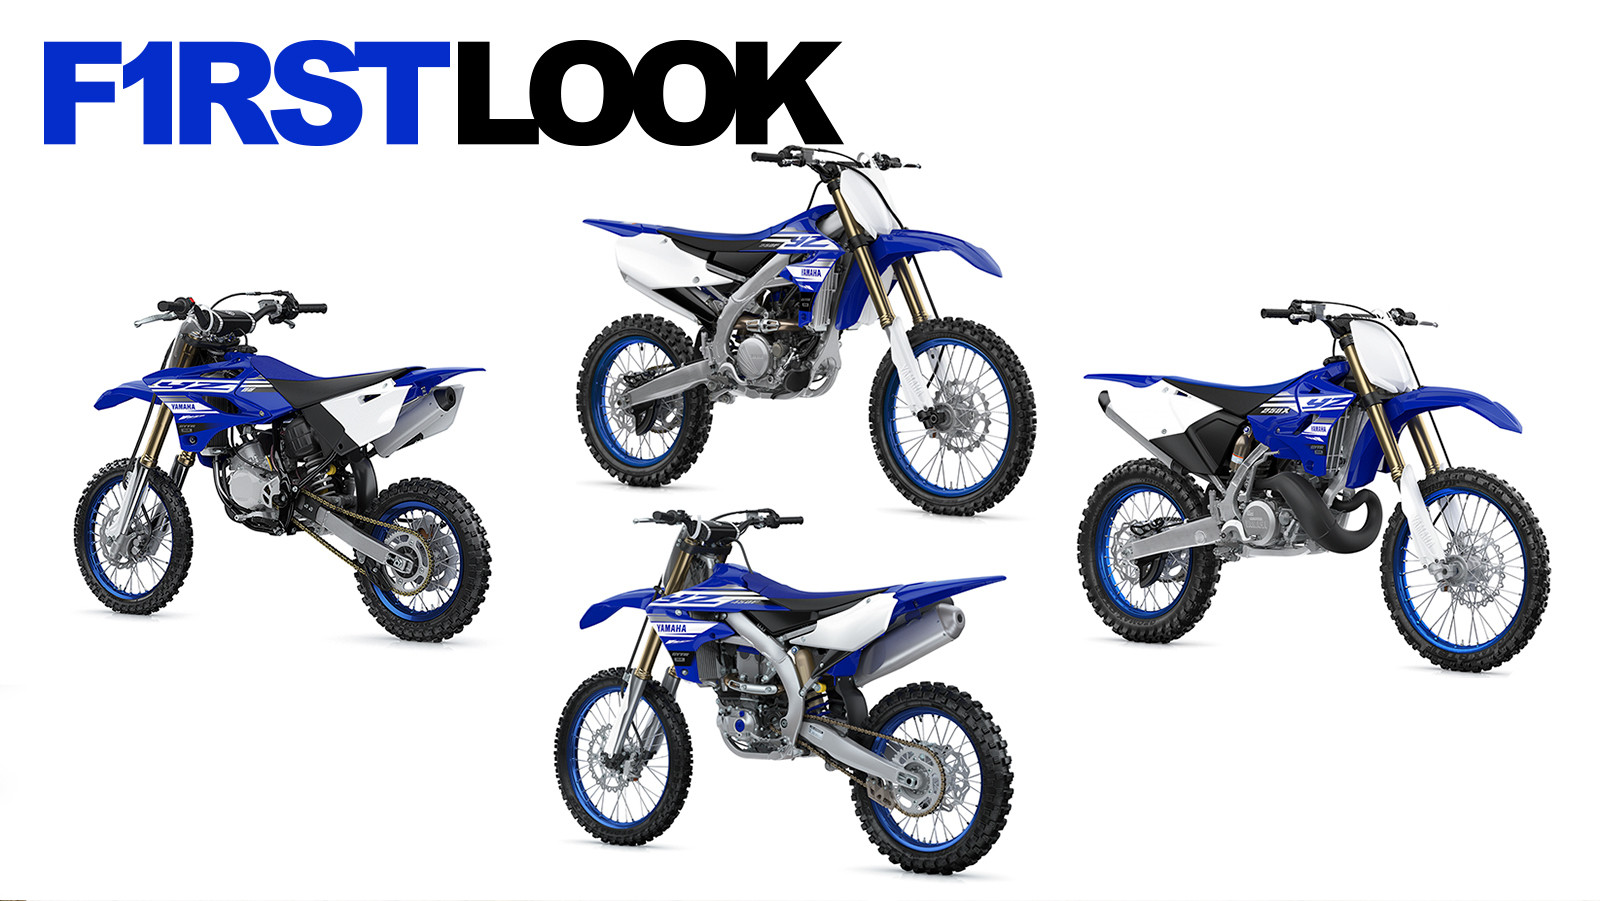 First Look: 2019 Yamaha Motocross and Off-Road Models